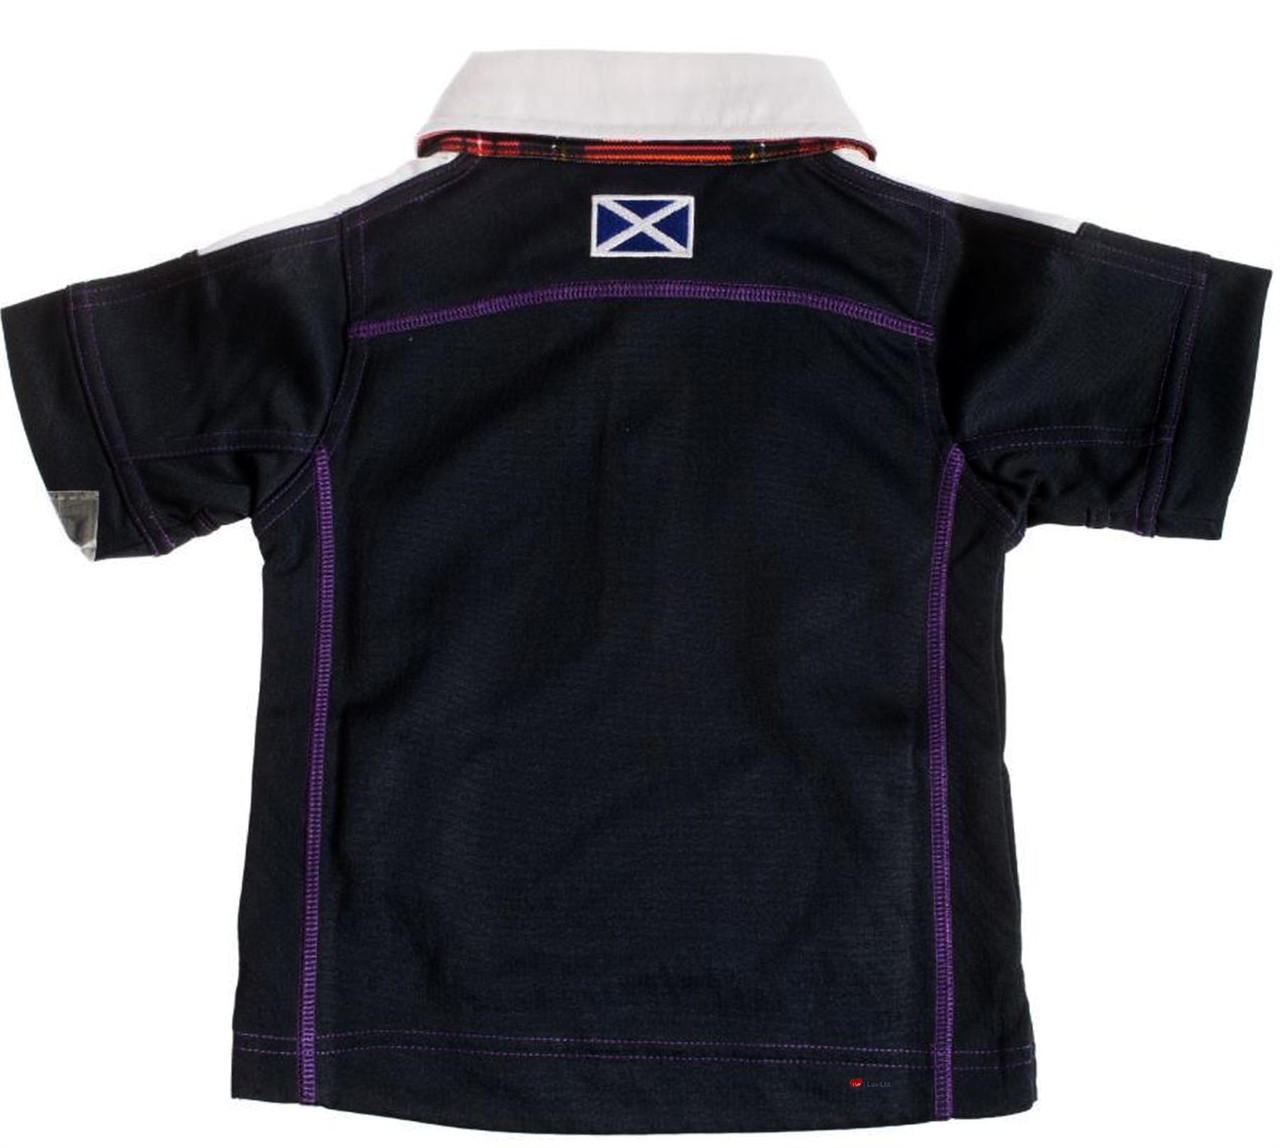 7e2c29d601ed ... Kids Scotland Rugby Shirt With Thistle Logo Design In Navy White Size 11 -12 Years